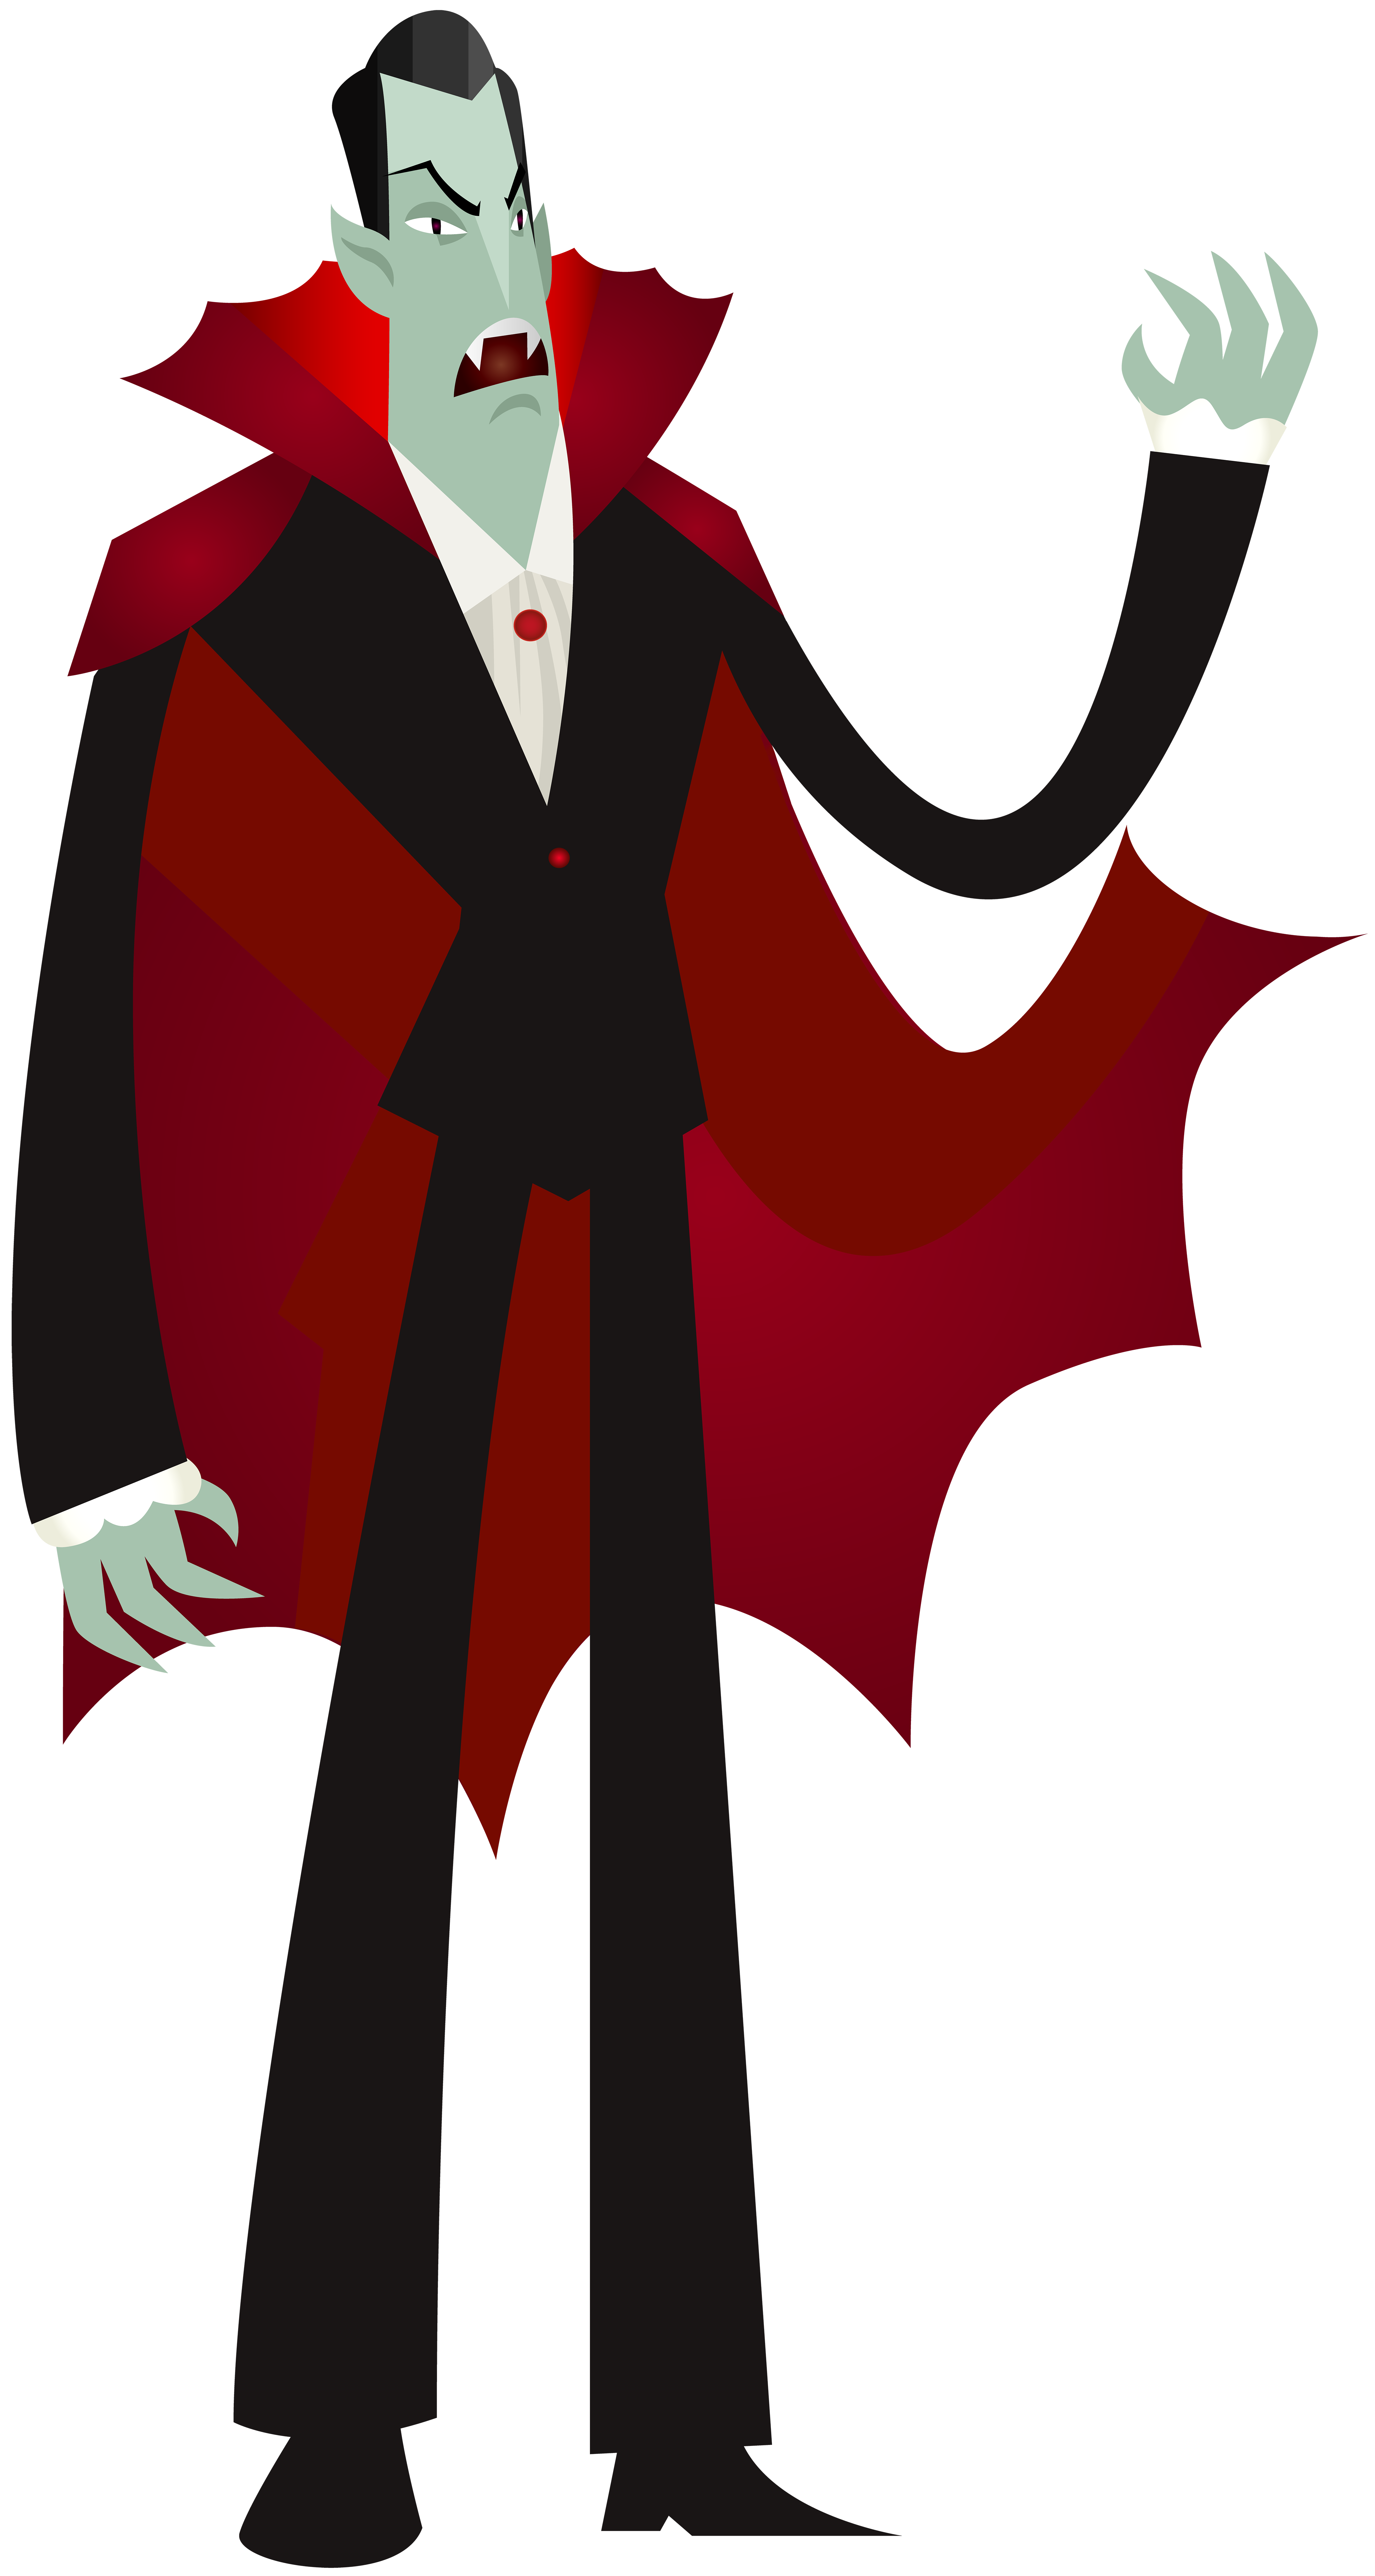 Png clip art image. Vampire clipart